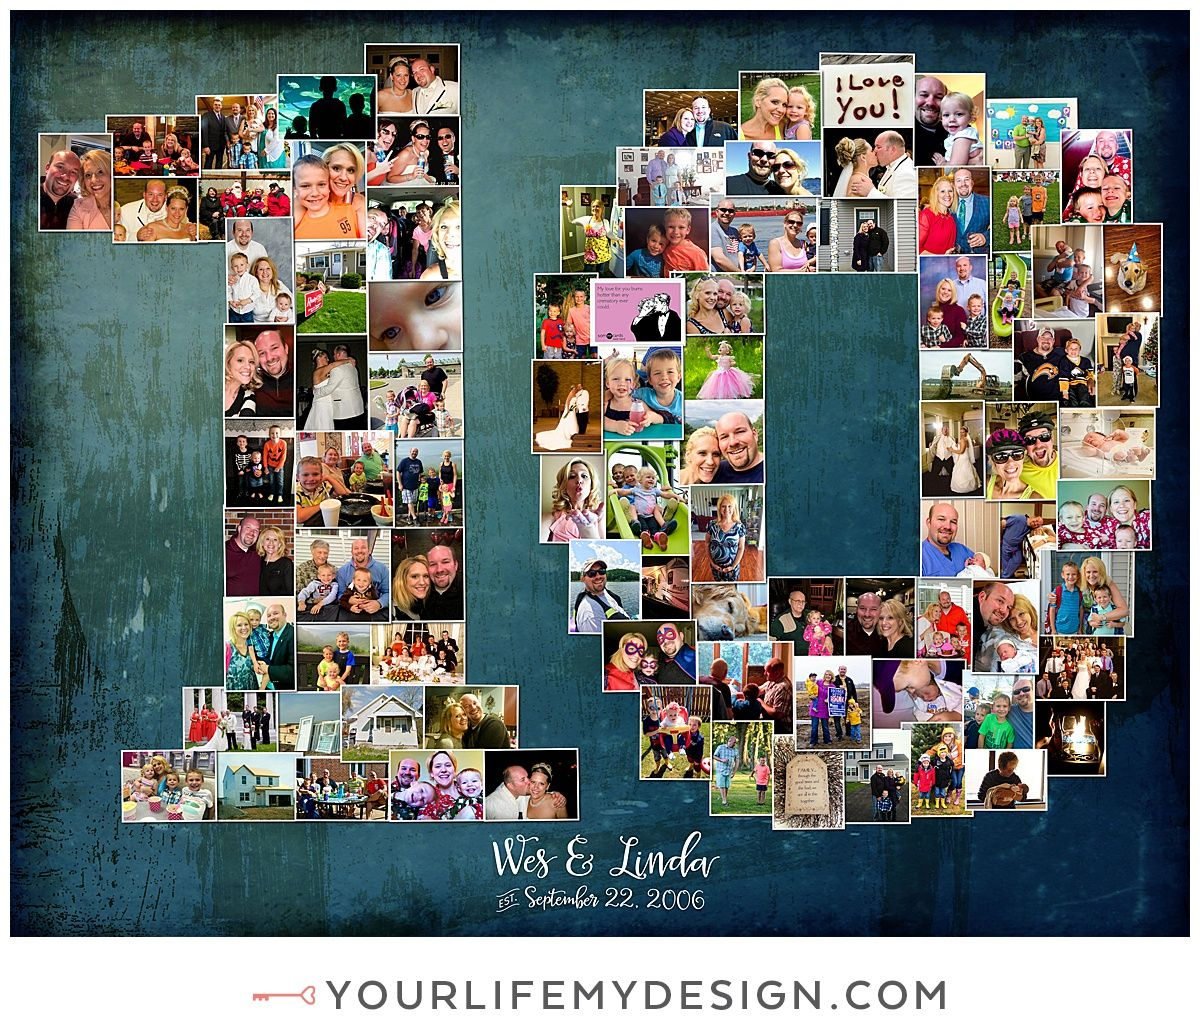 11x14 With 90 Photos Collagedesign By Http Yourlifemydesign Com Yourli 10th Wedding Anniversary Gift Anniversary Gifts For Wife Wedding Anniversary Gifts